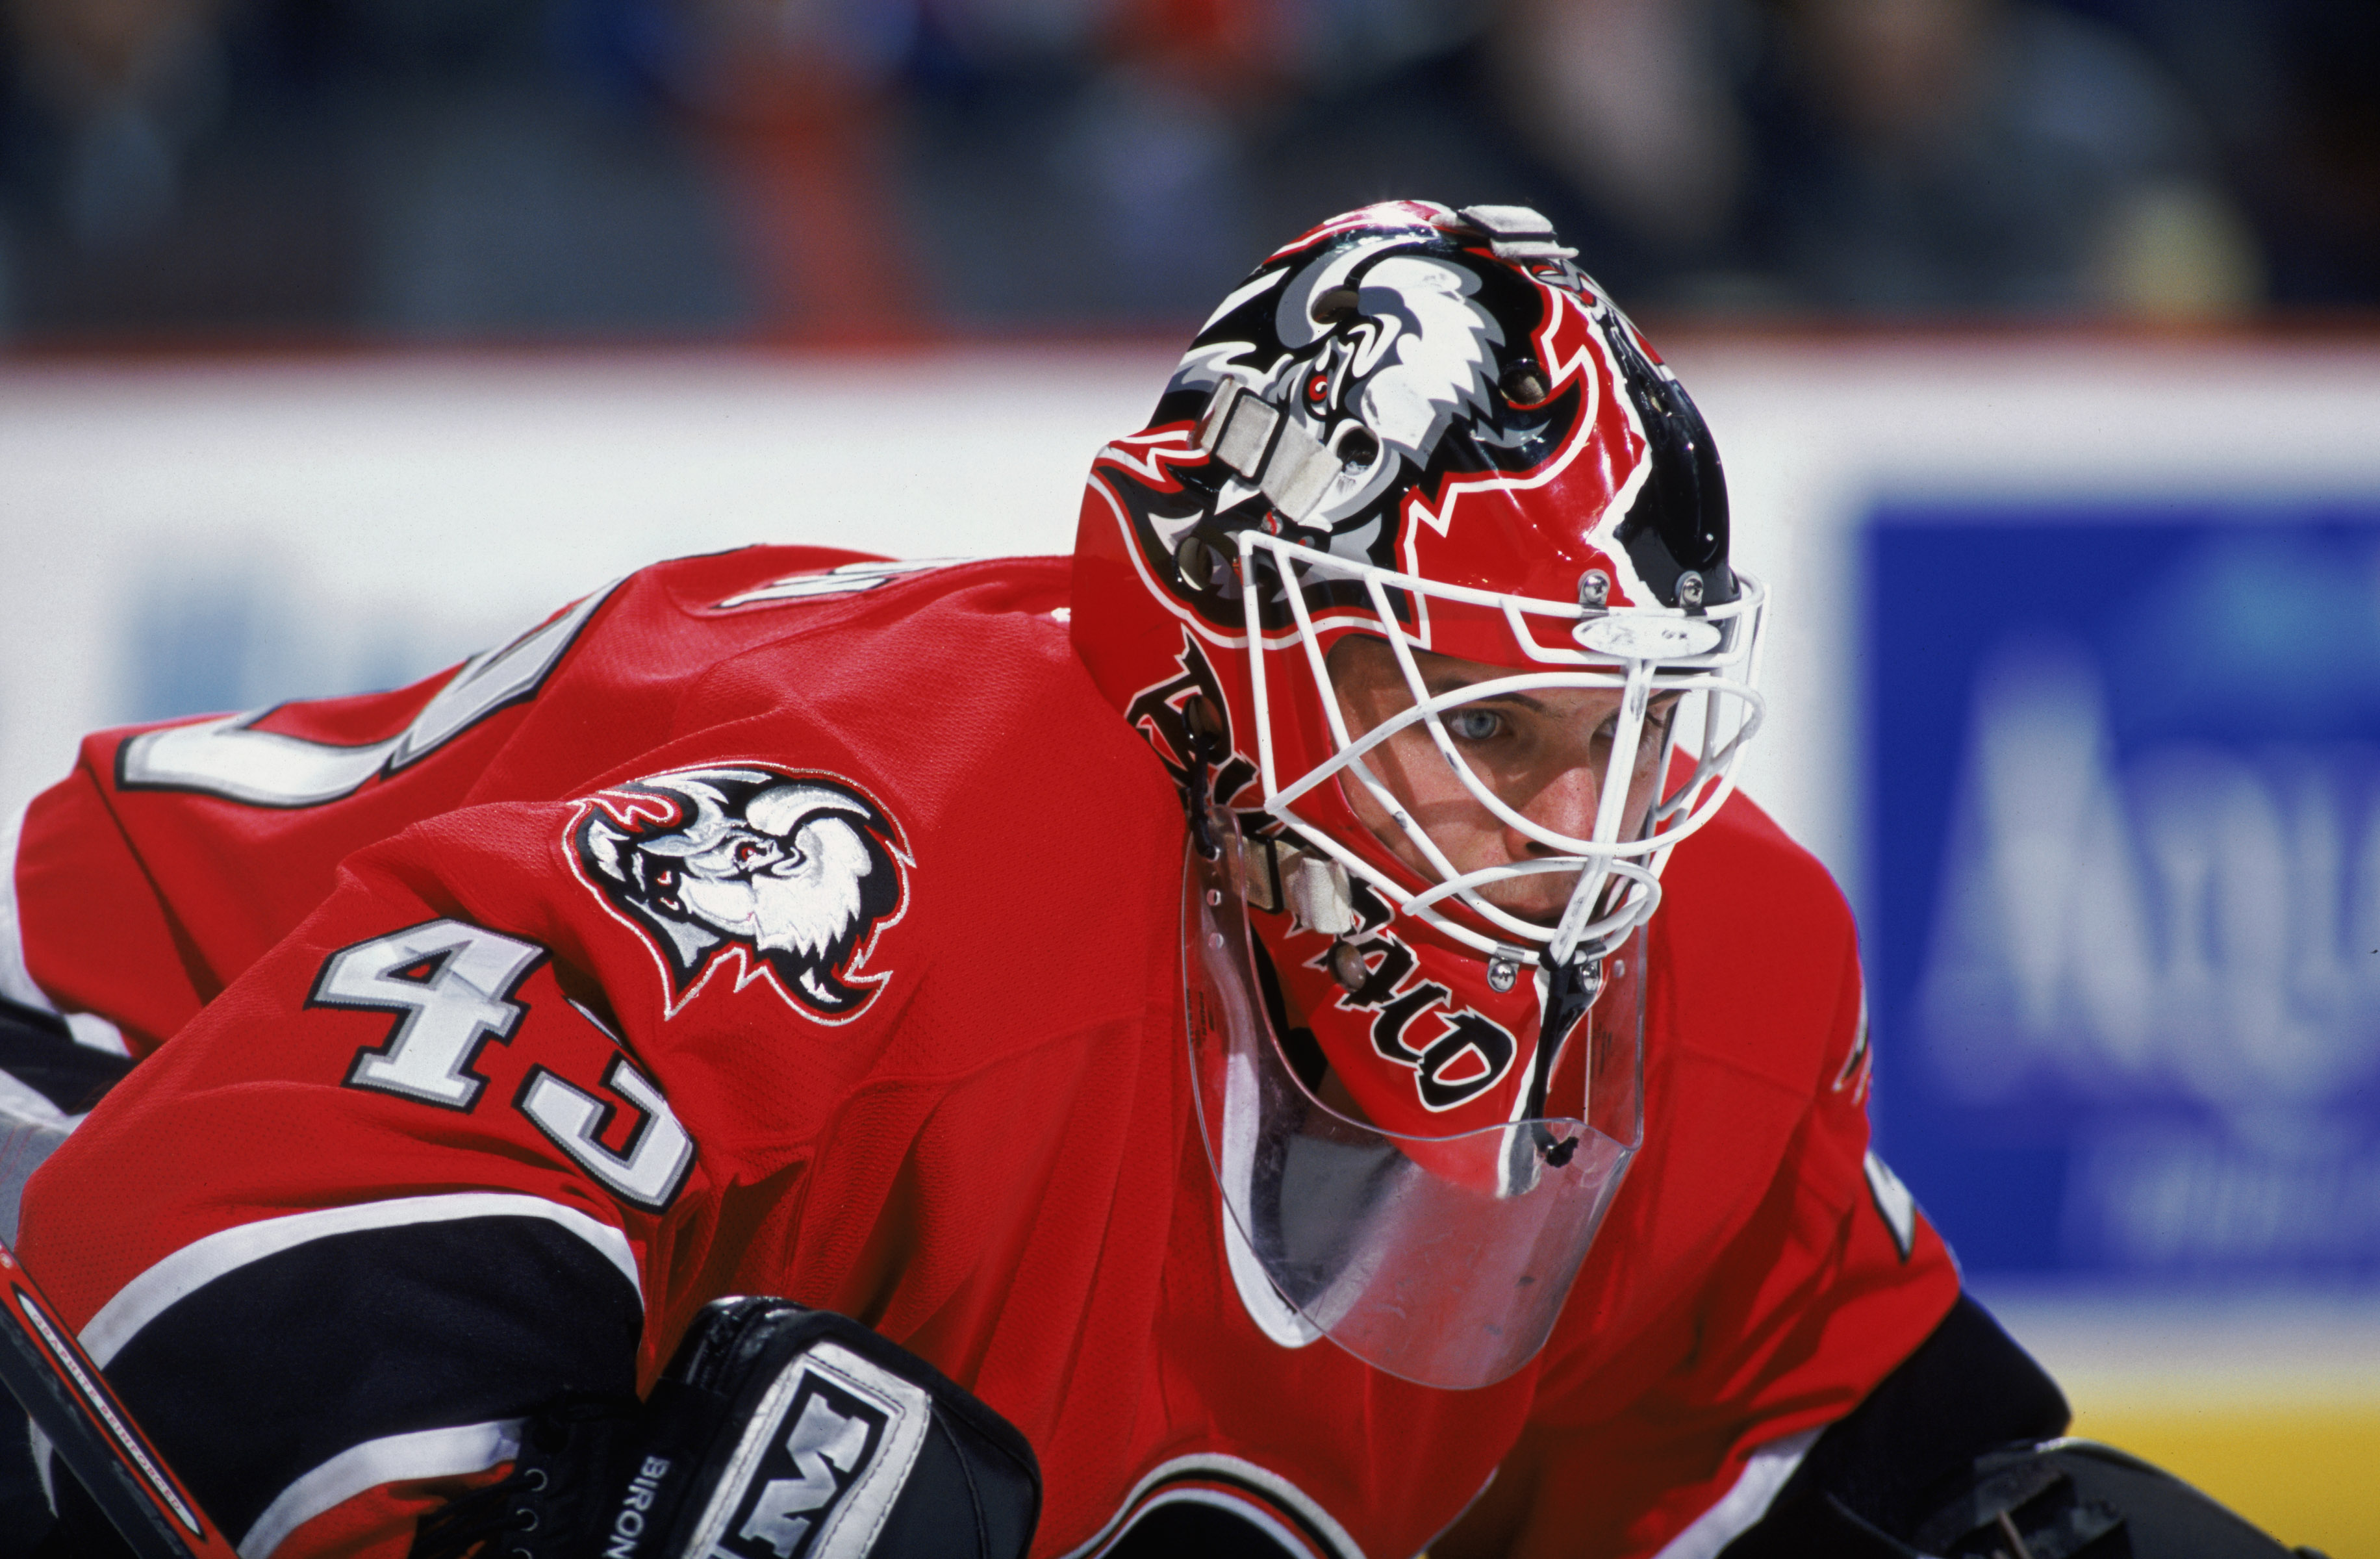 This is a close up of goaltender Martin Biron.